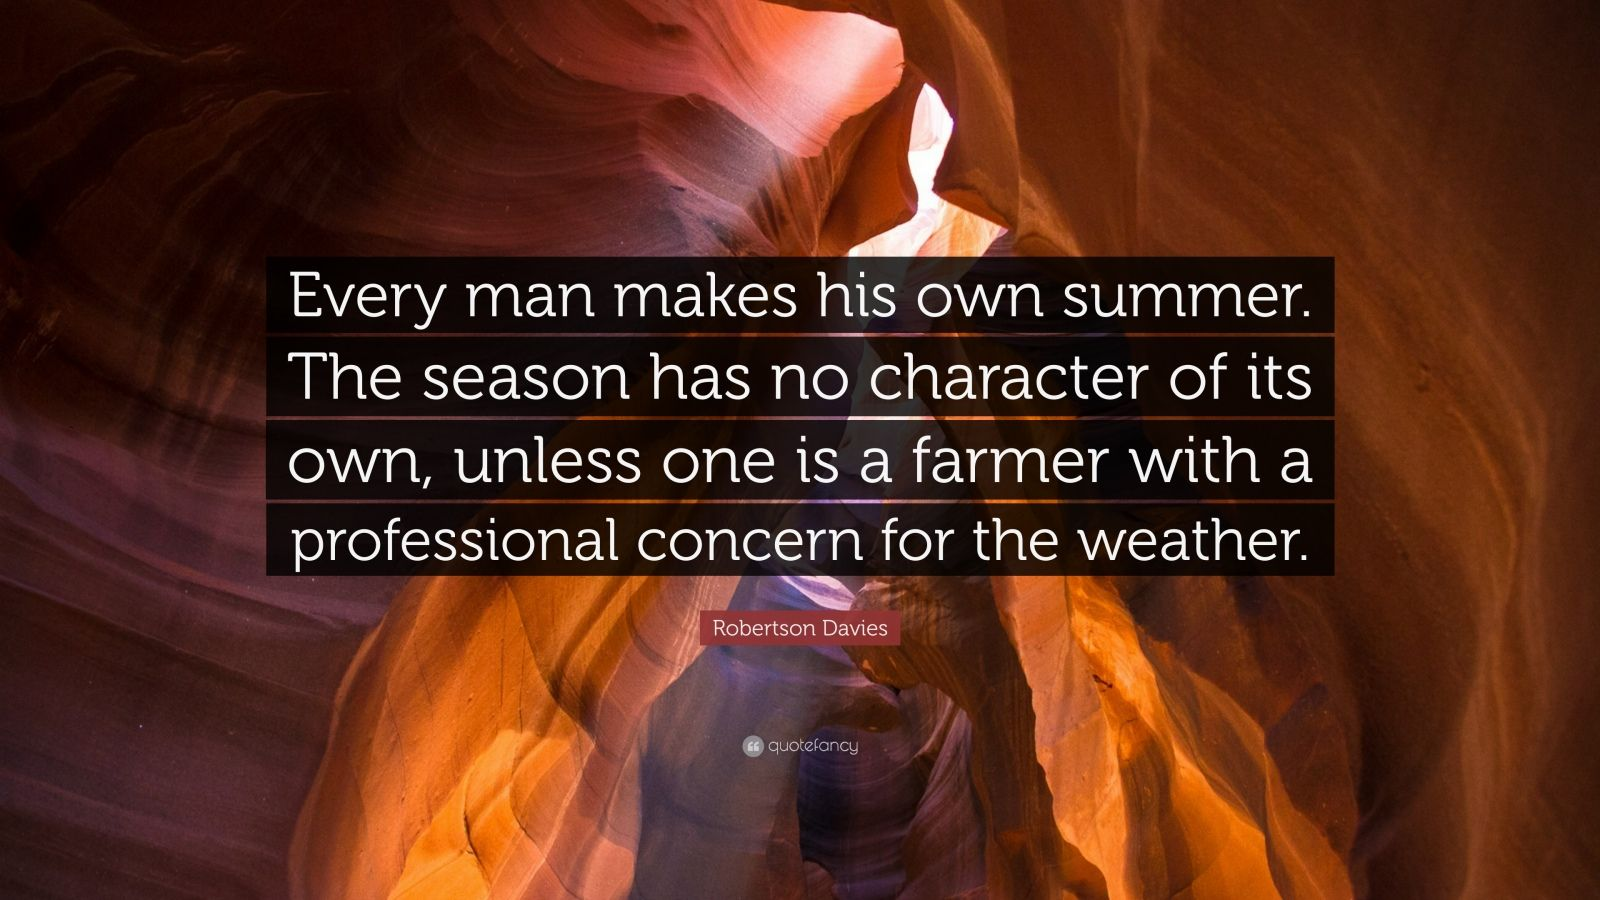 """Robertson Davies Quote: """"Every man makes his own summer. The season has no character of its own, unless one is a farmer with a professional concern for the weather."""""""